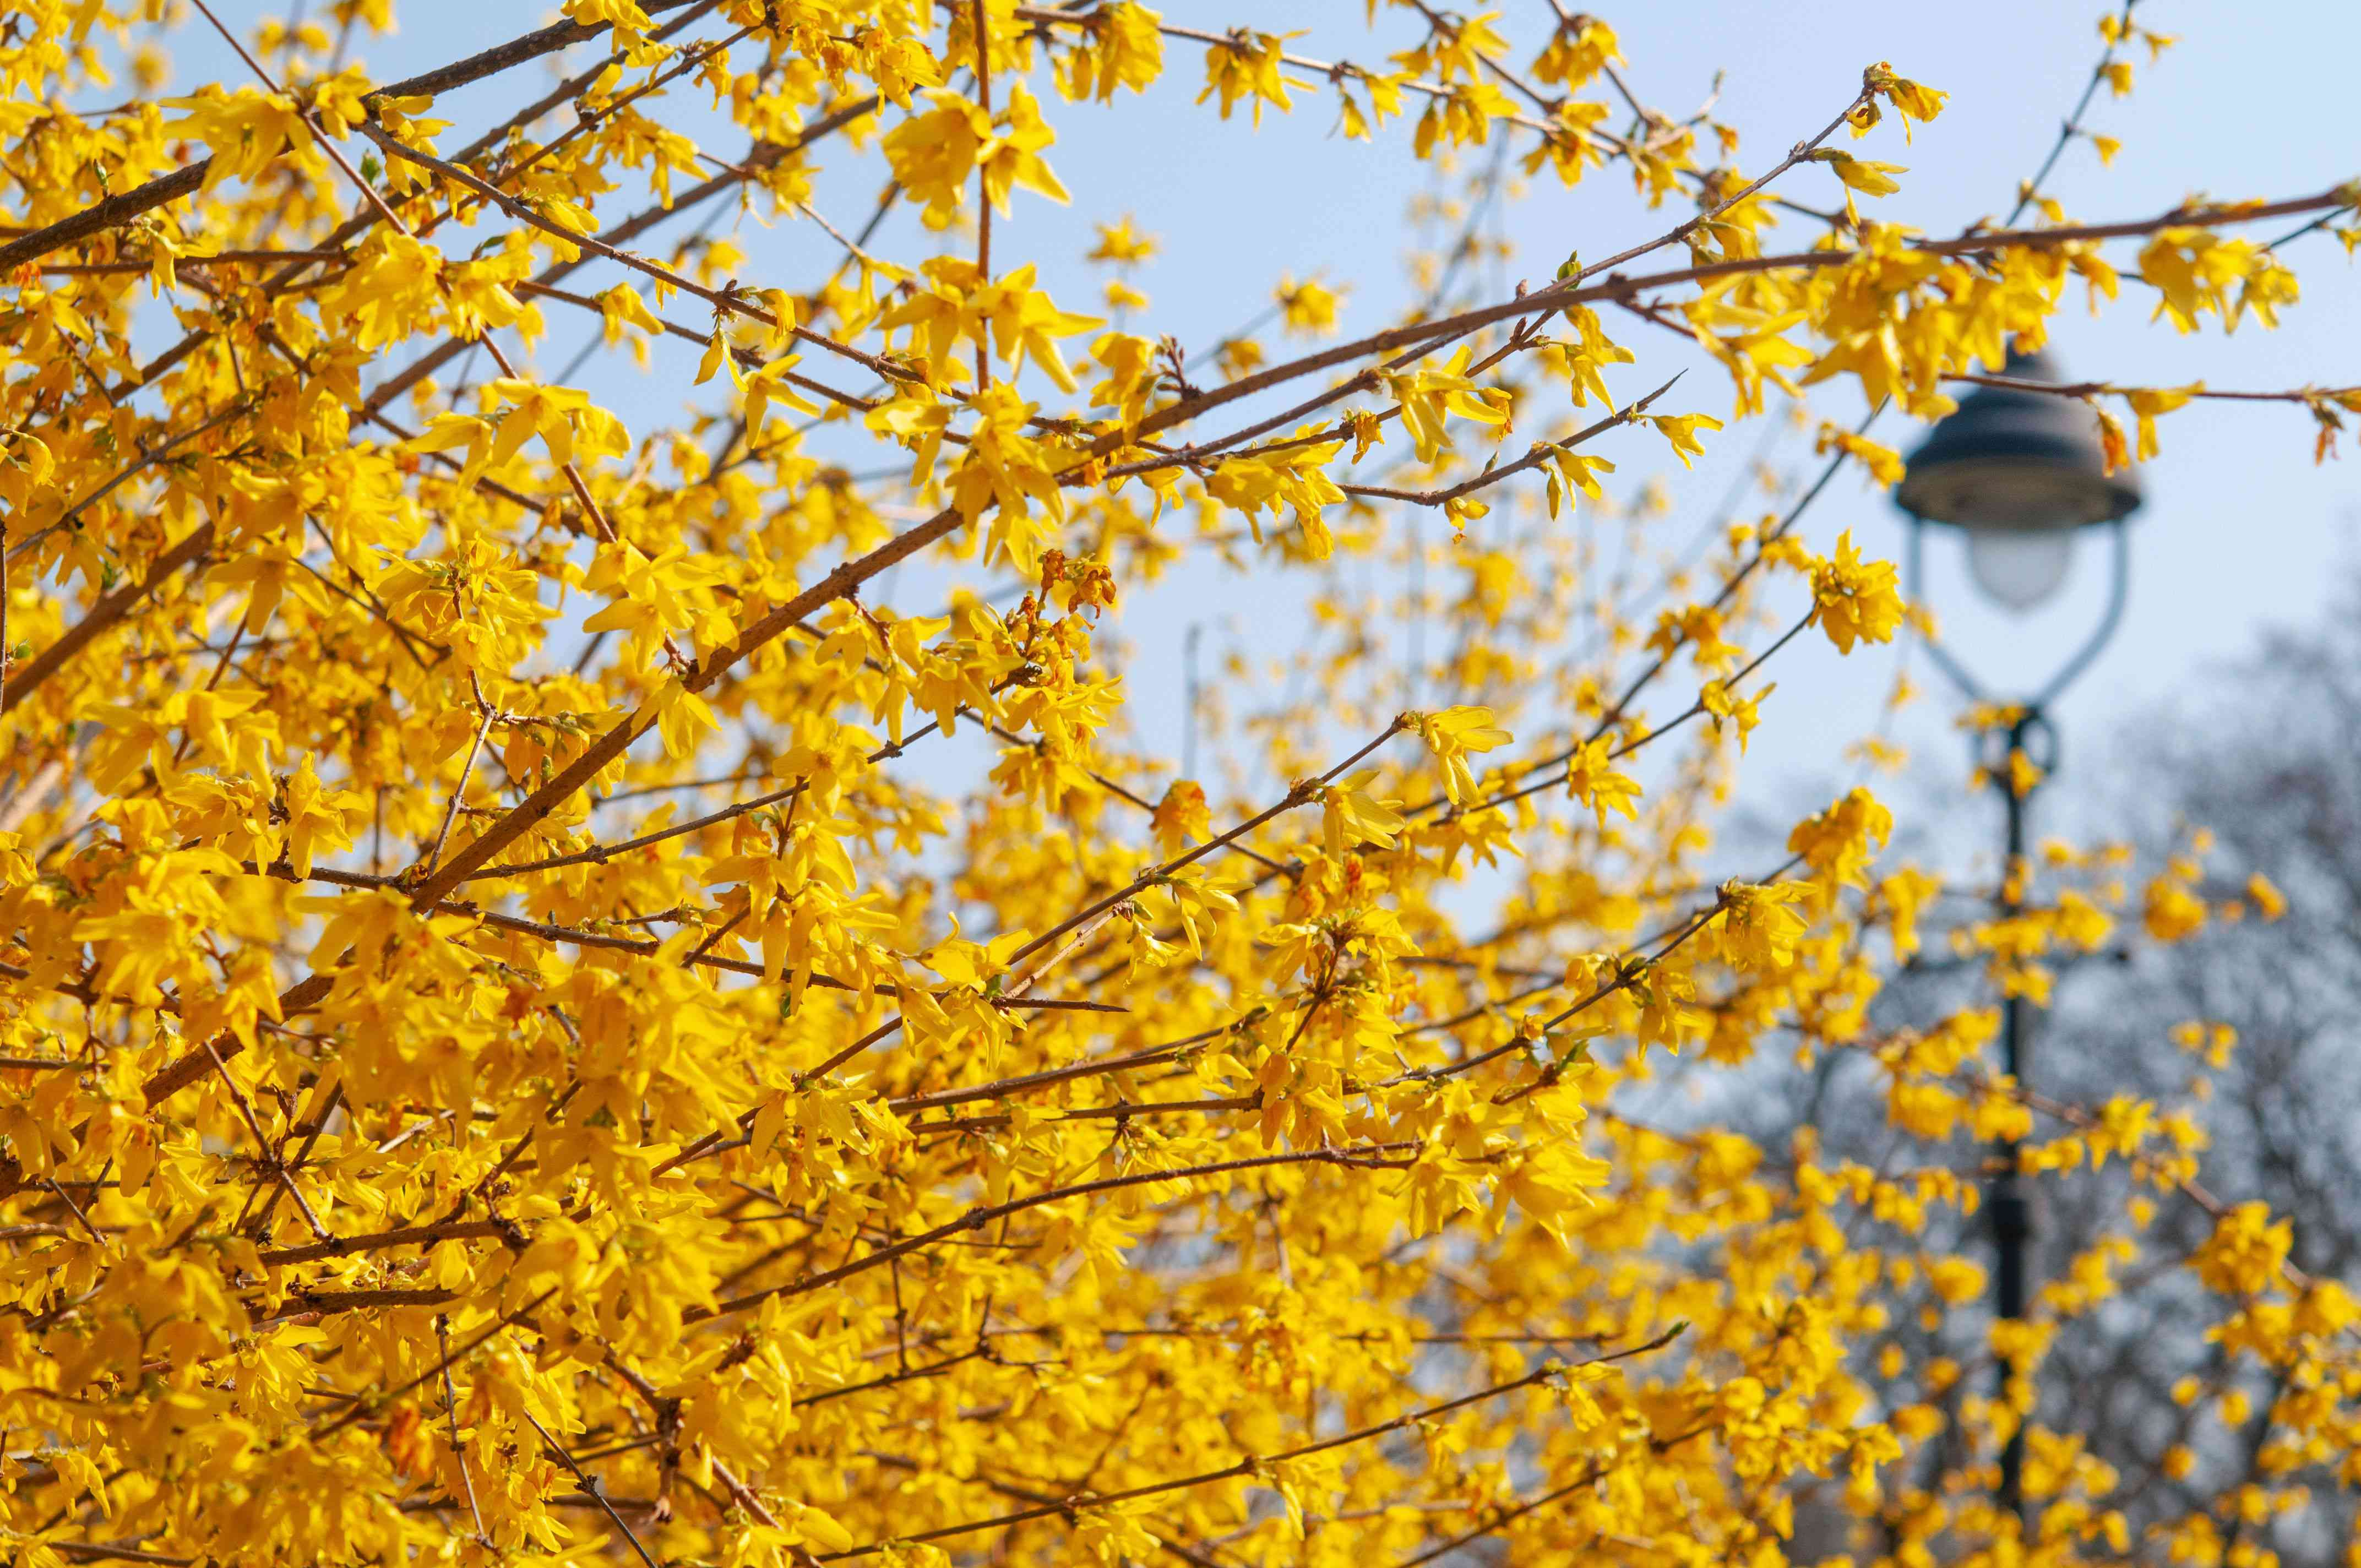 Forsythia bush with small yellow leaves on extended branches